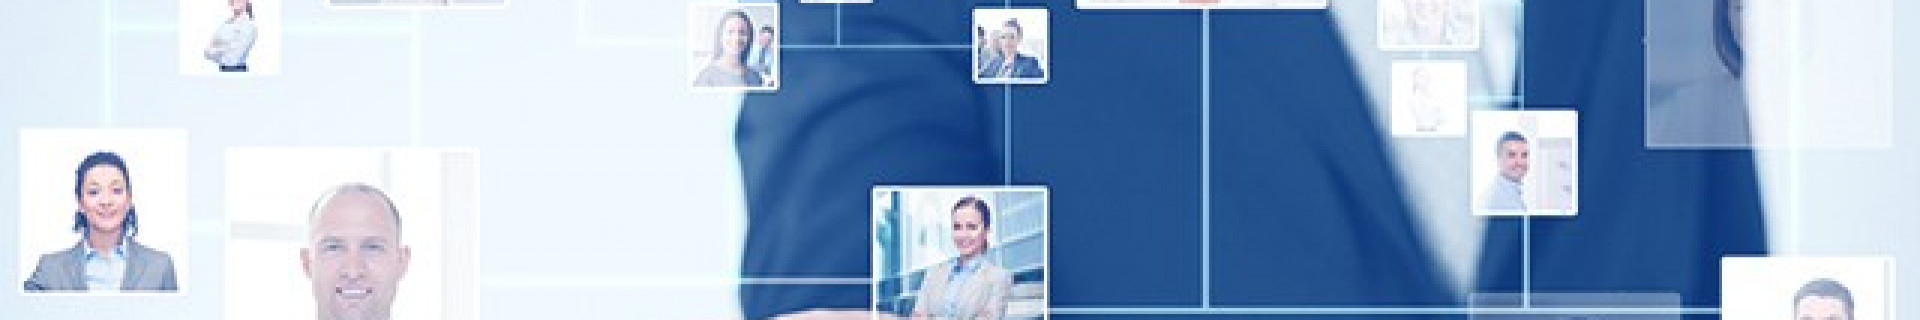 Process, project and human resource management in the IT industry